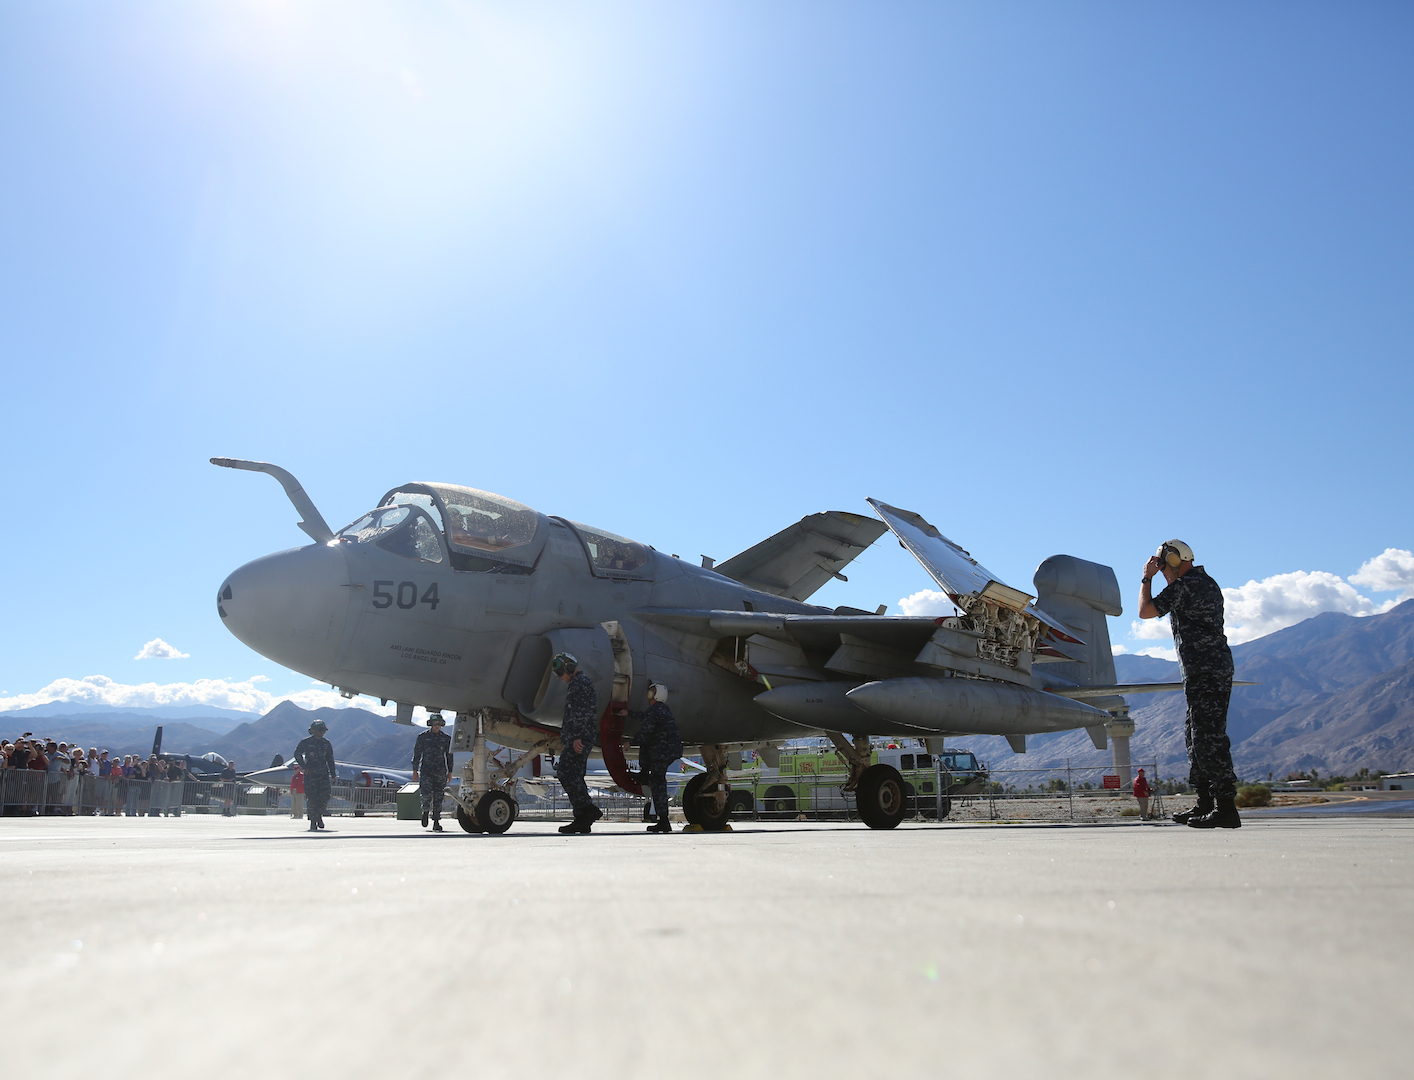 Navy Maintenance team performs post-flight checks on the EA-6B 'Prowler' fixed-wing aircraft after it lands for its retirement ceremony at the Palm Springs Air Museum, Nov. 21, 2014. The aircraft was retired after more than 20 years serving the U.S. Navy and will be put on display at the museum. (Official Marine Corps Photo by Lance Cpl. Julio McGraw/Released)